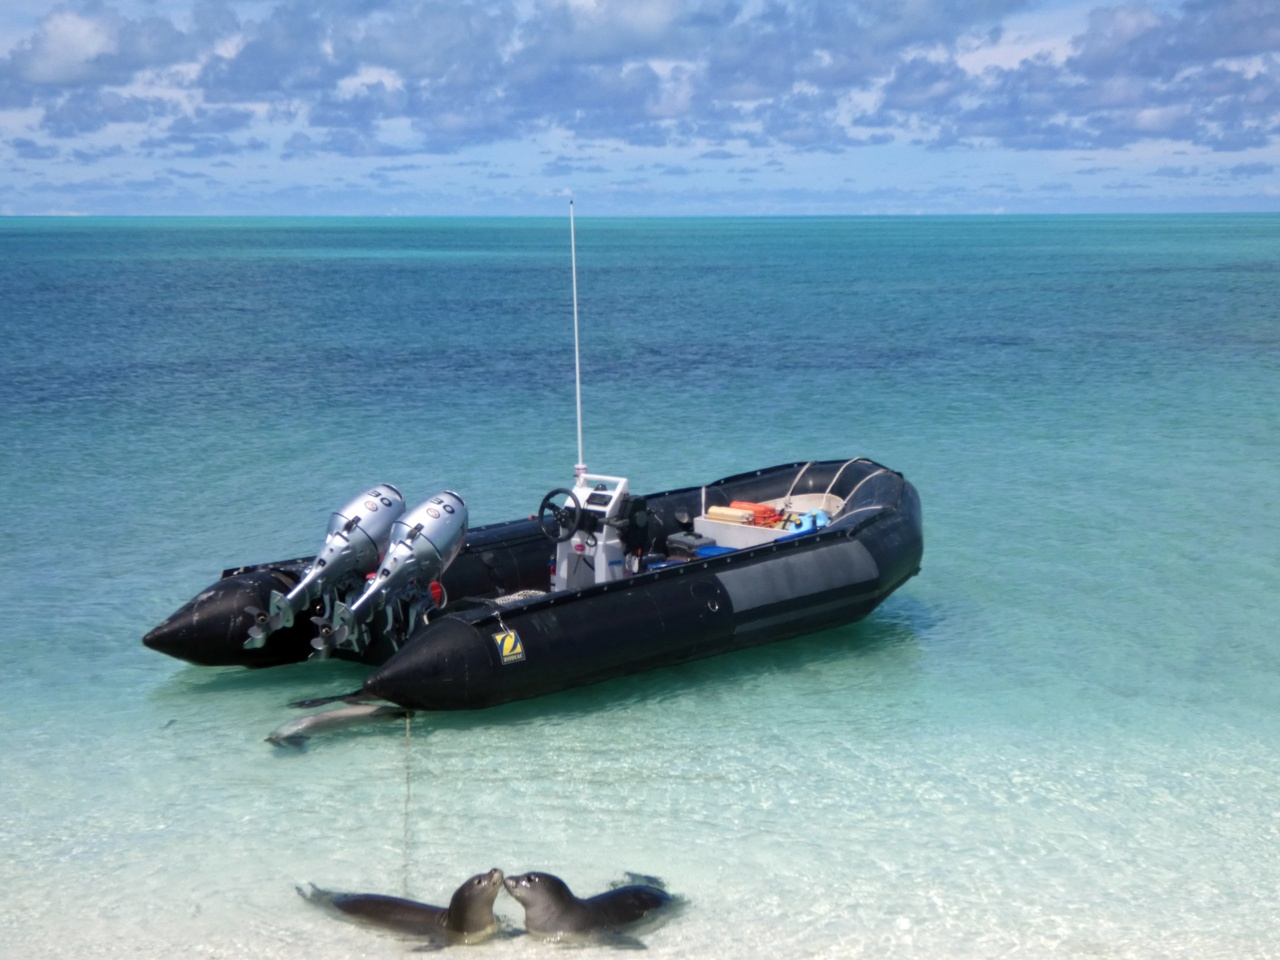 Two monk seal pups in water in front of small inflatable boat.